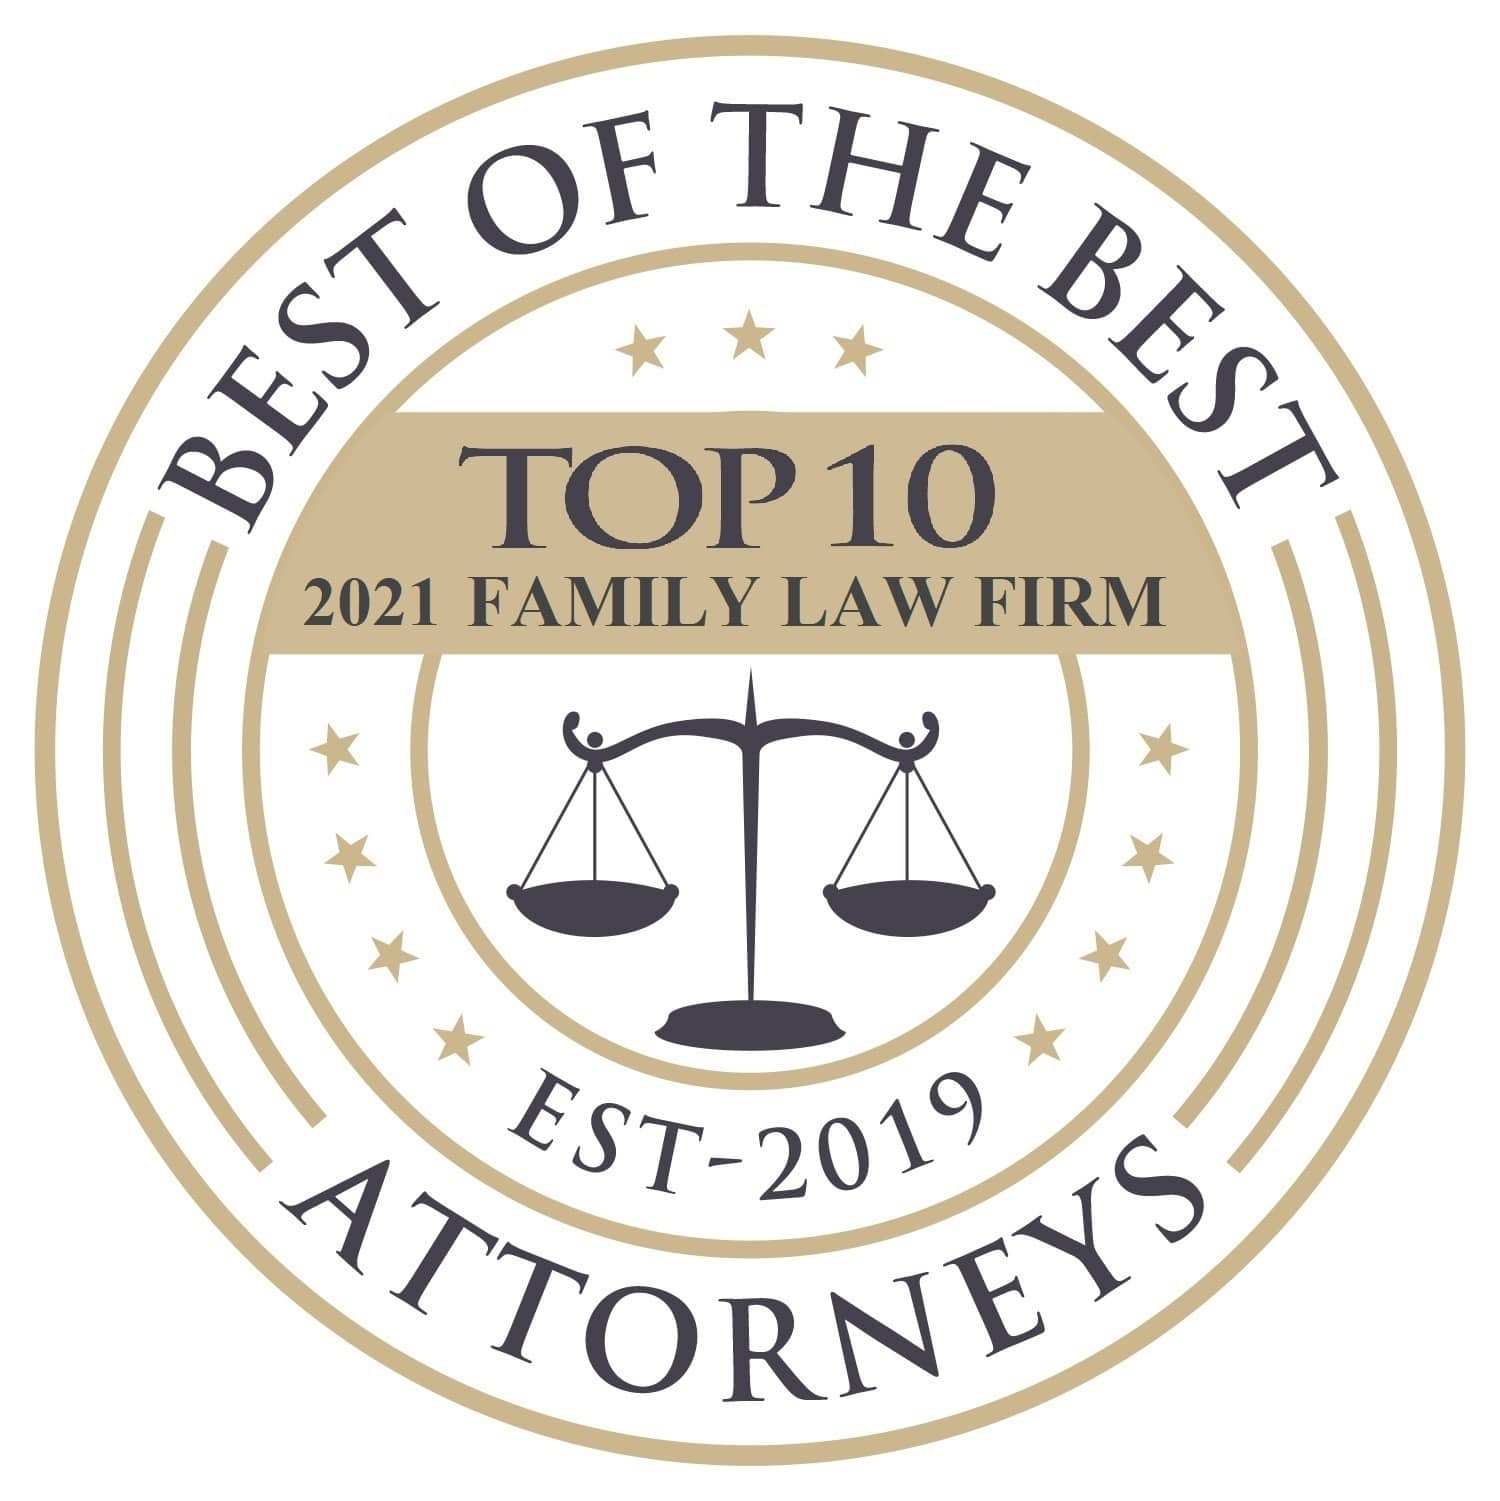 Best of the Best Attorneys - Top 10 2021 Family Law Firm